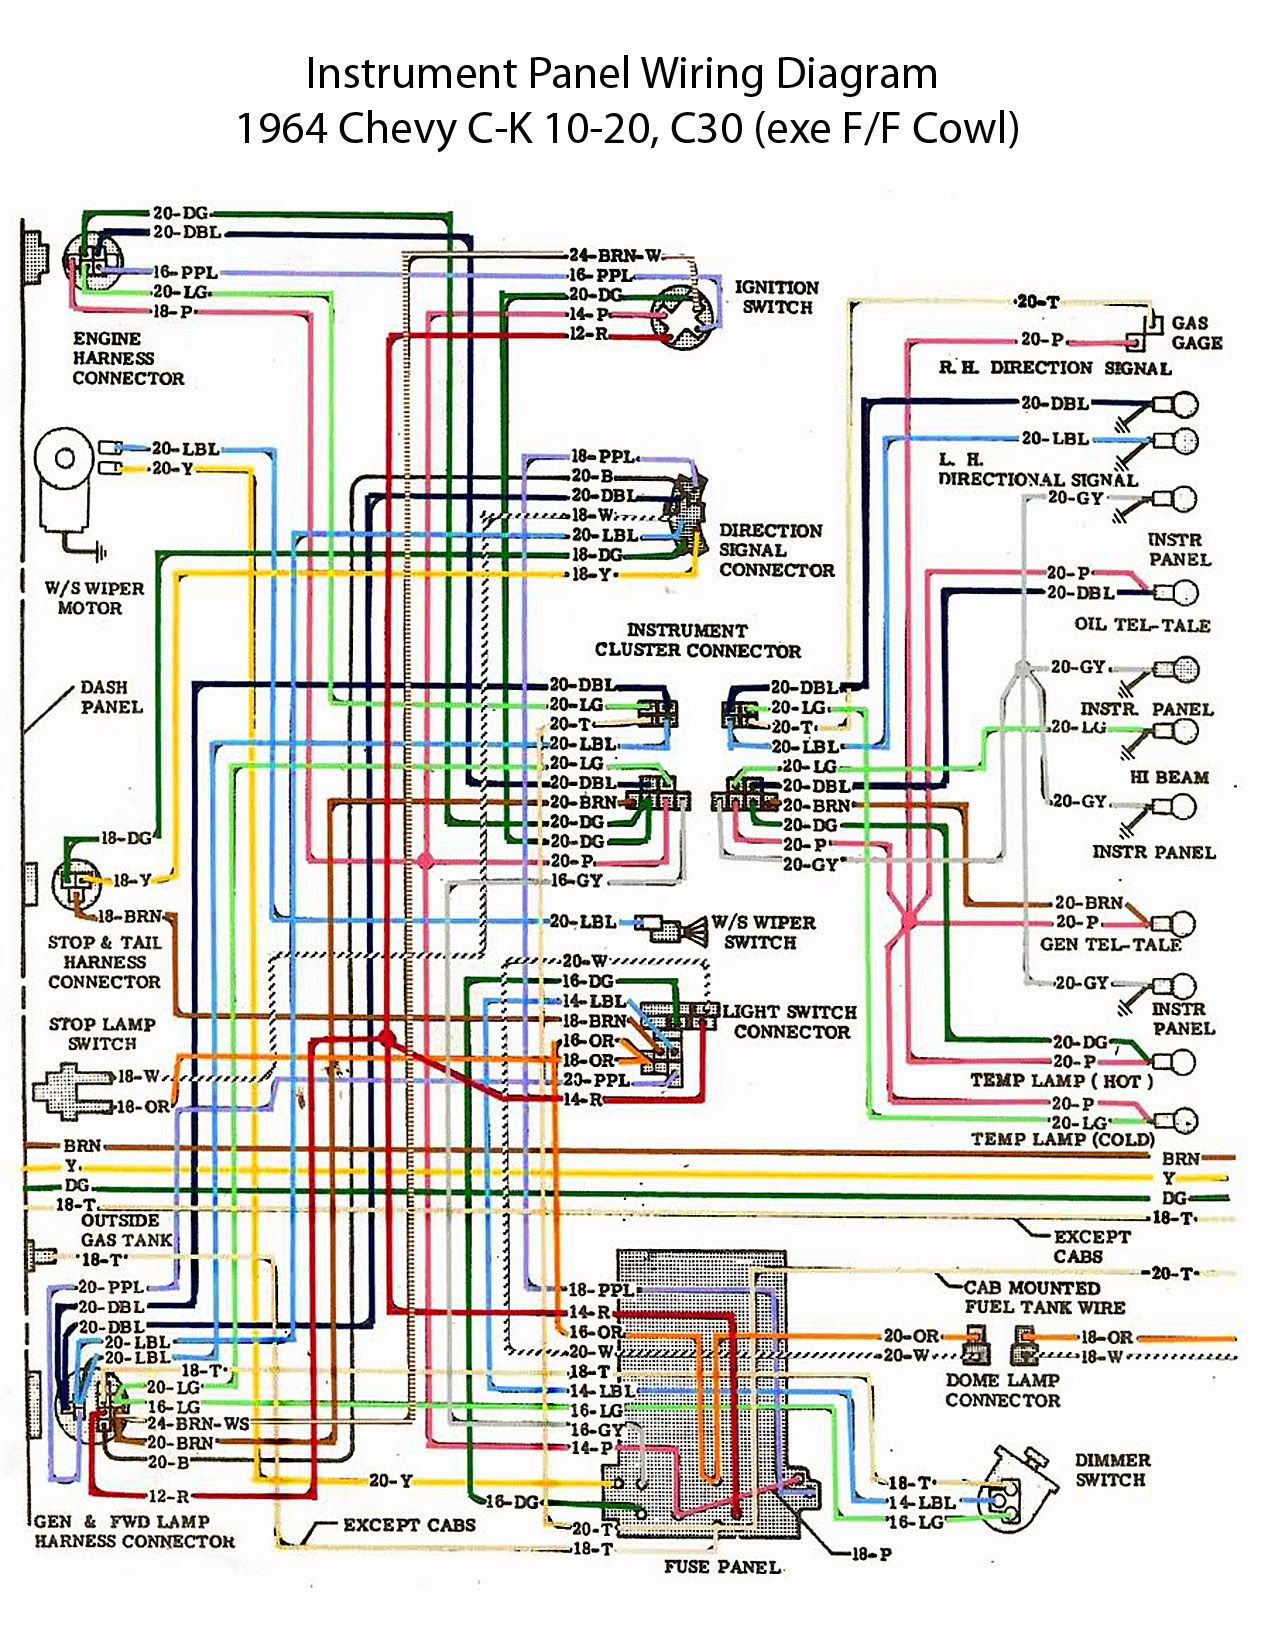 gm gauge diagram wiring diagrams trigg gm dash wiring diagrams wiring diagram dat gm fuel gauge [ 1275 x 1650 Pixel ]